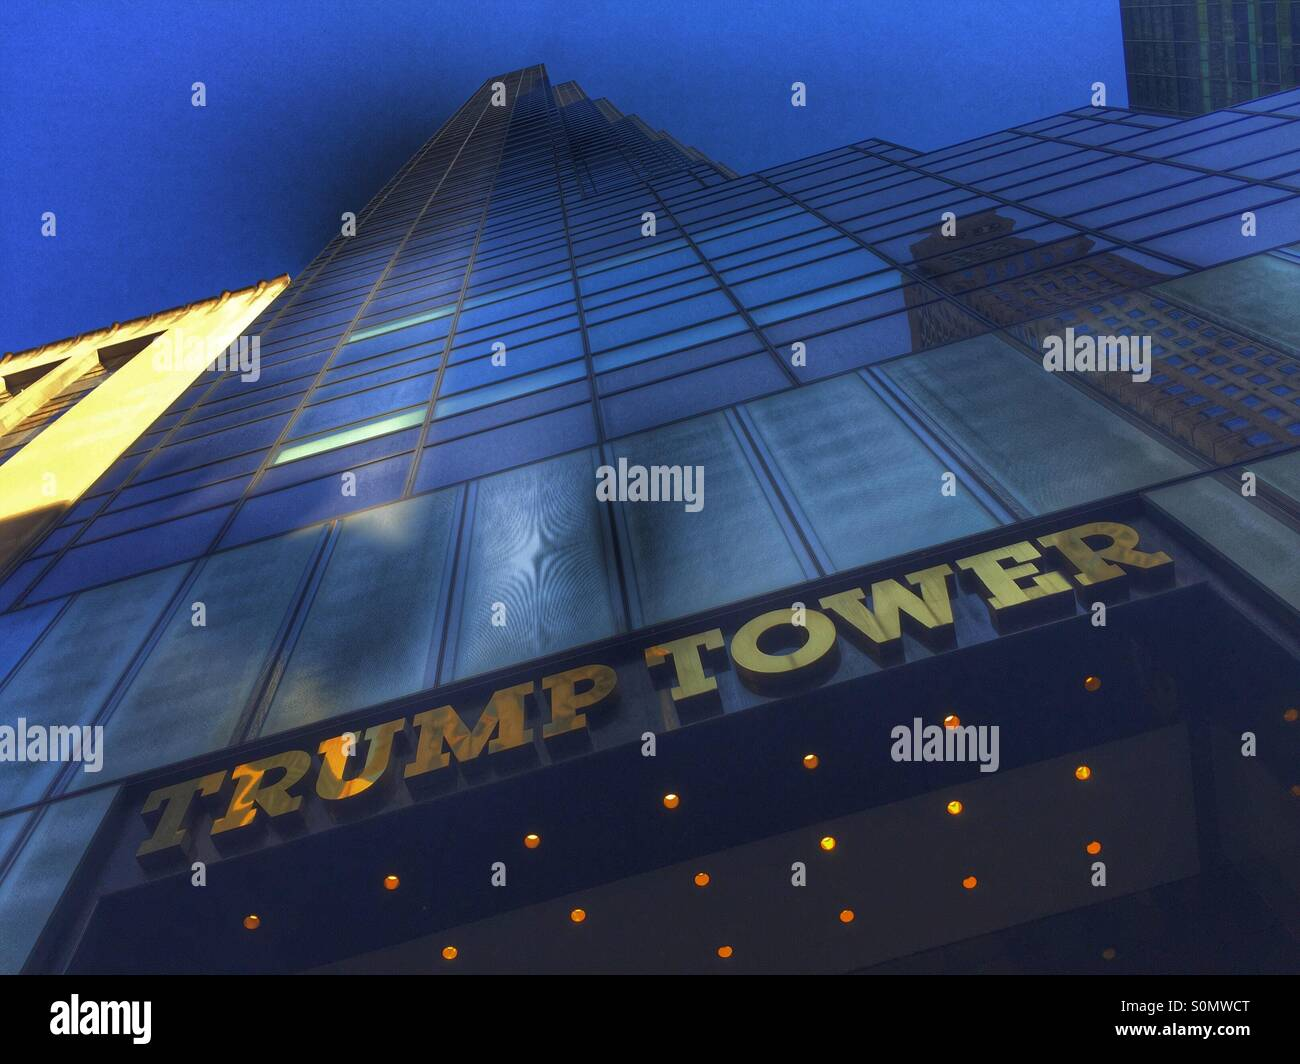 Trump tower - Stock Image